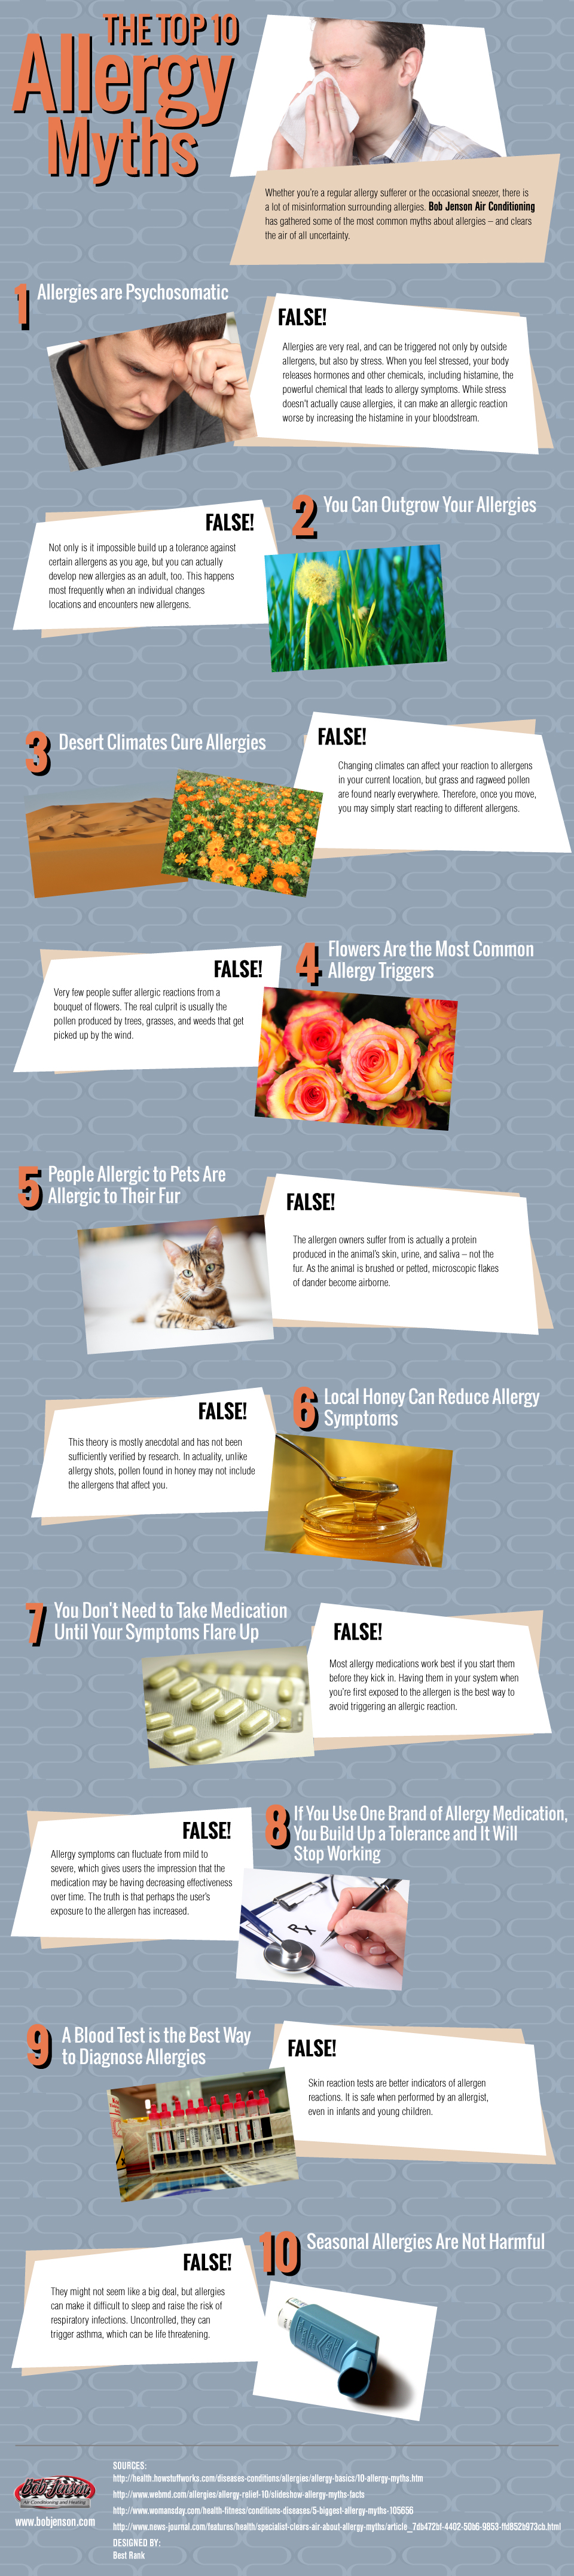 Top 10 Allergy Myths You Probably Still Believe Infographic